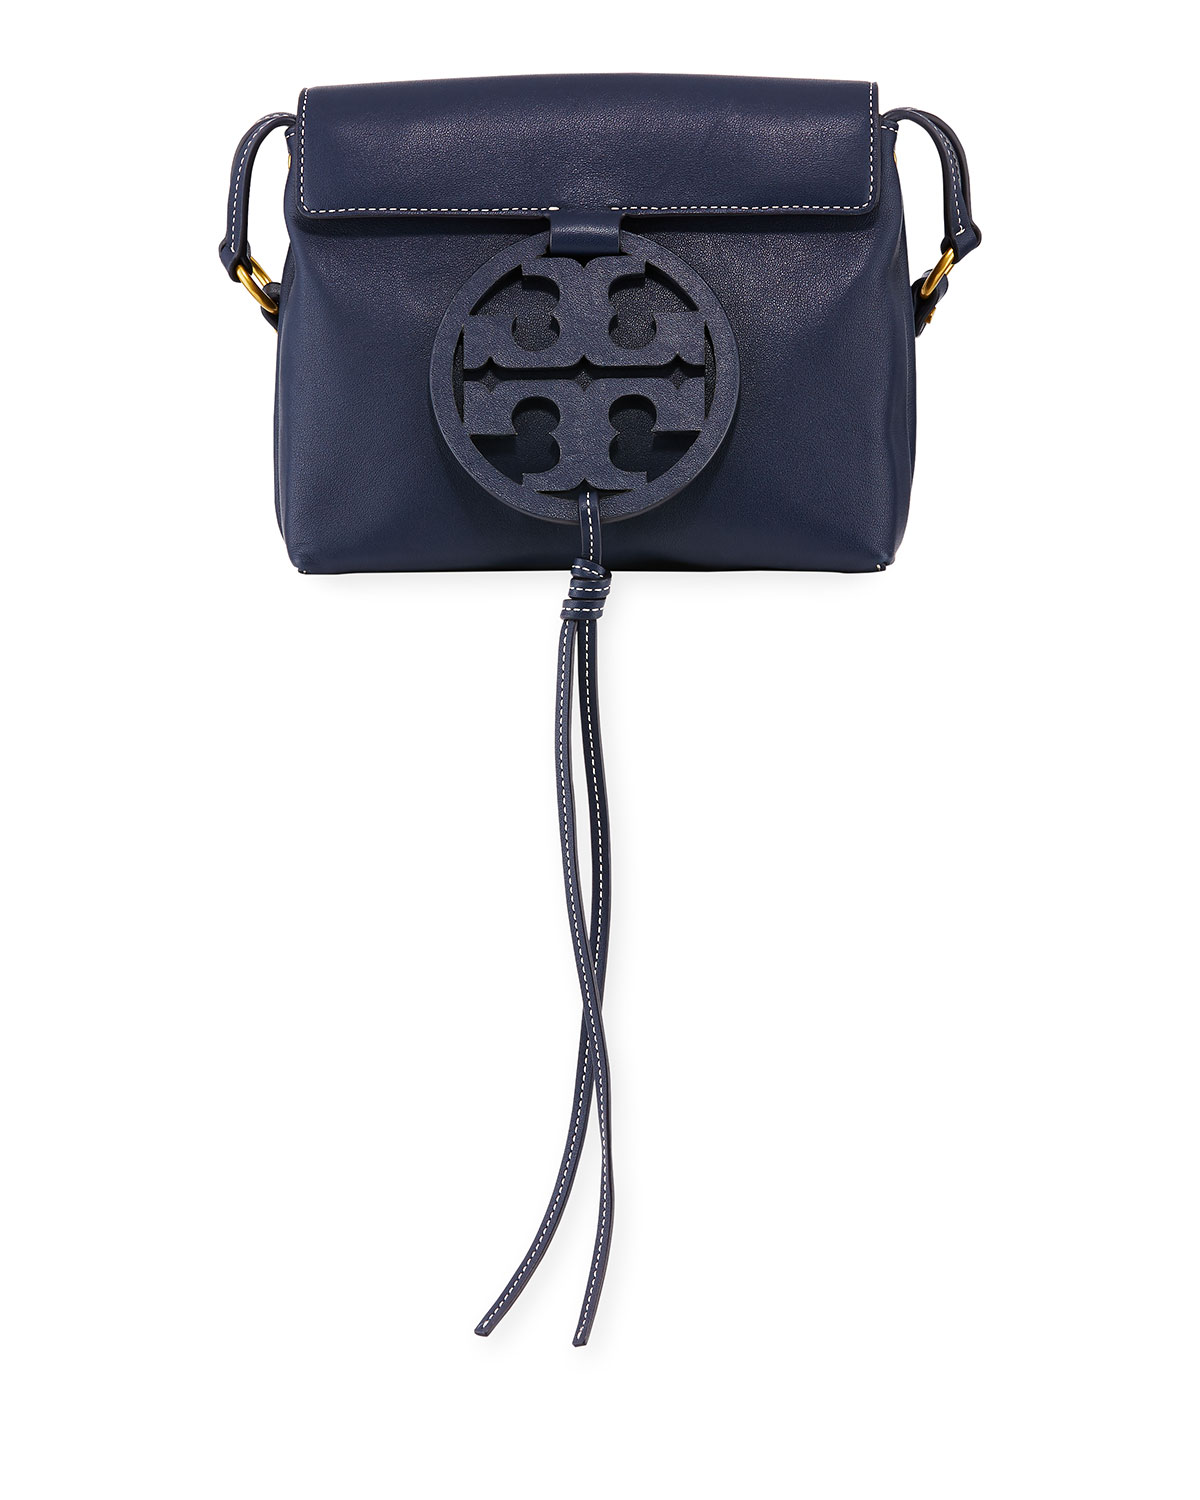 d21682baf9fe5 Tory Burch Miller Leather Crossbody Bag